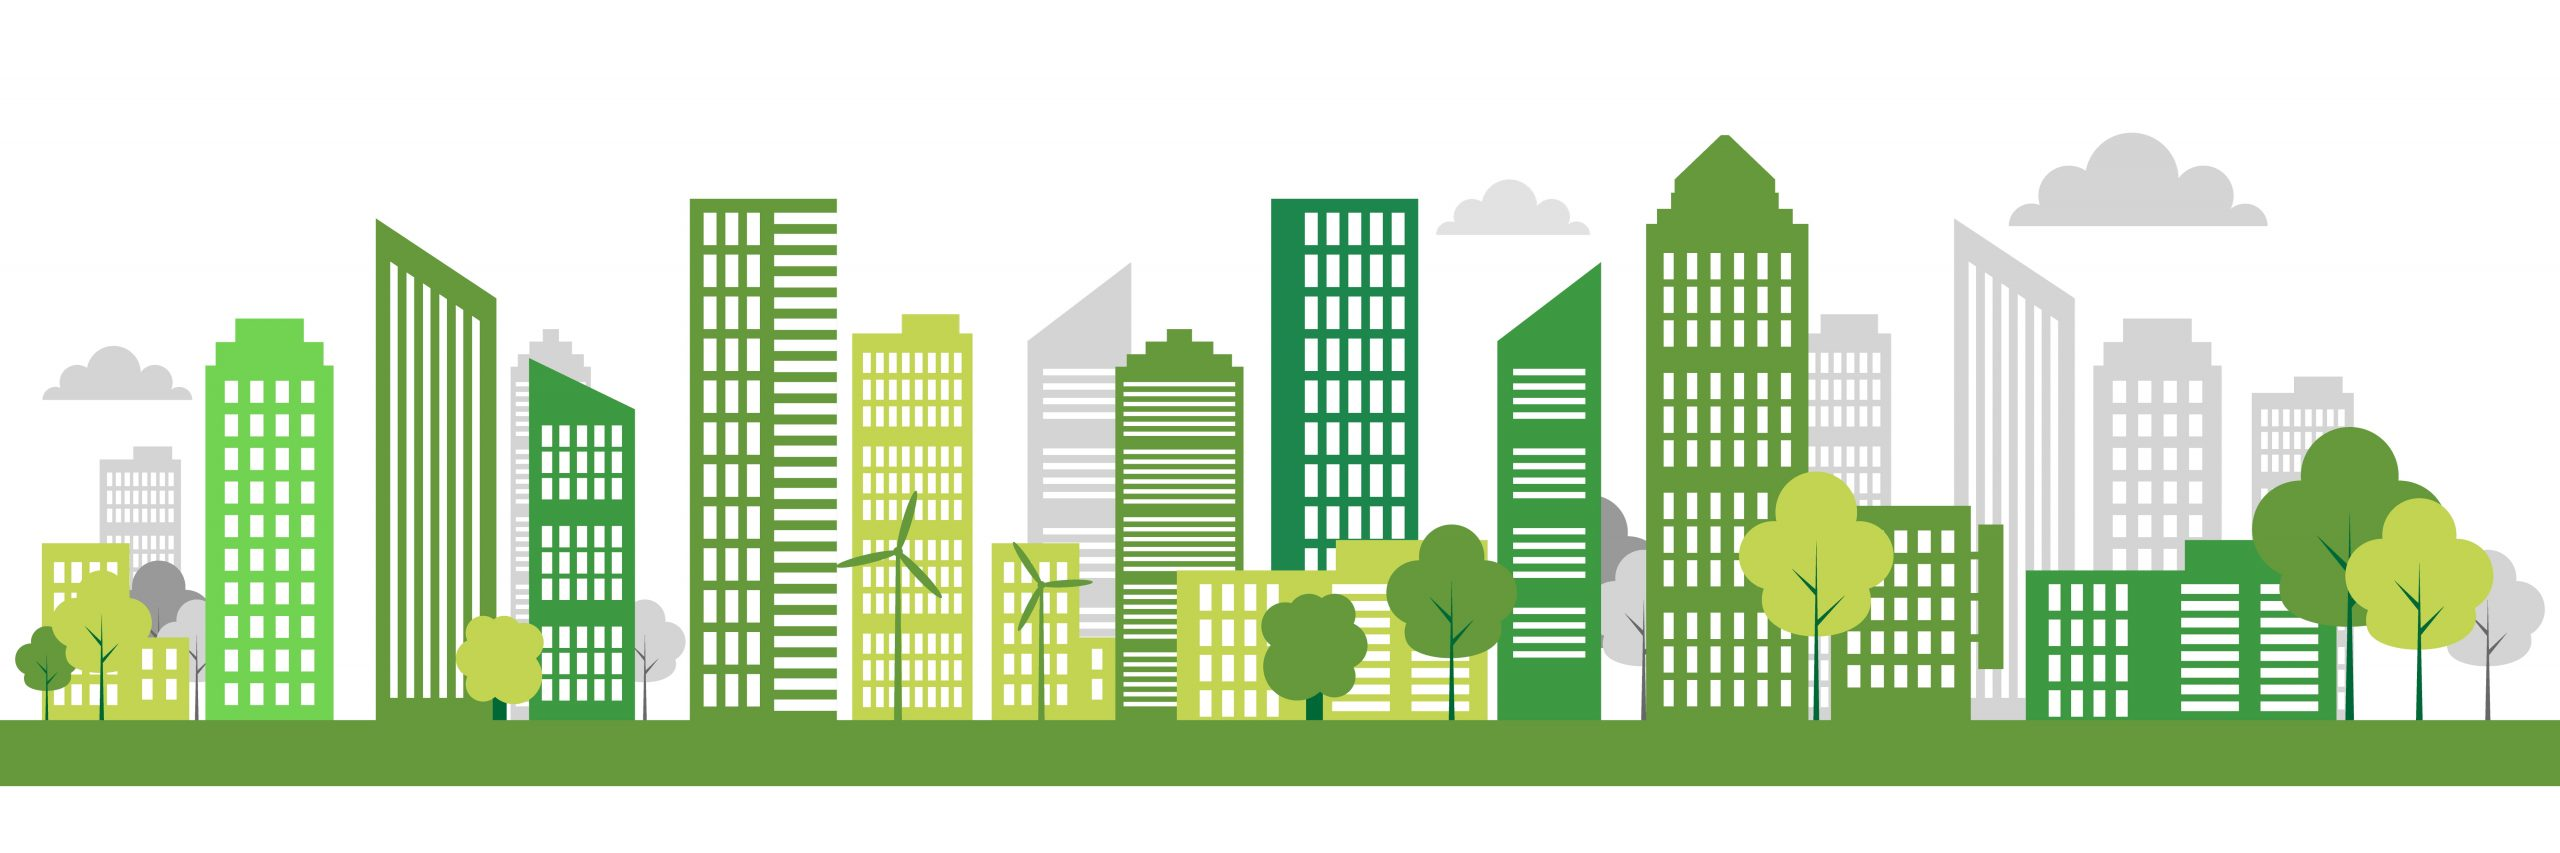 Woodyfuel sustainable cities and communities graphic